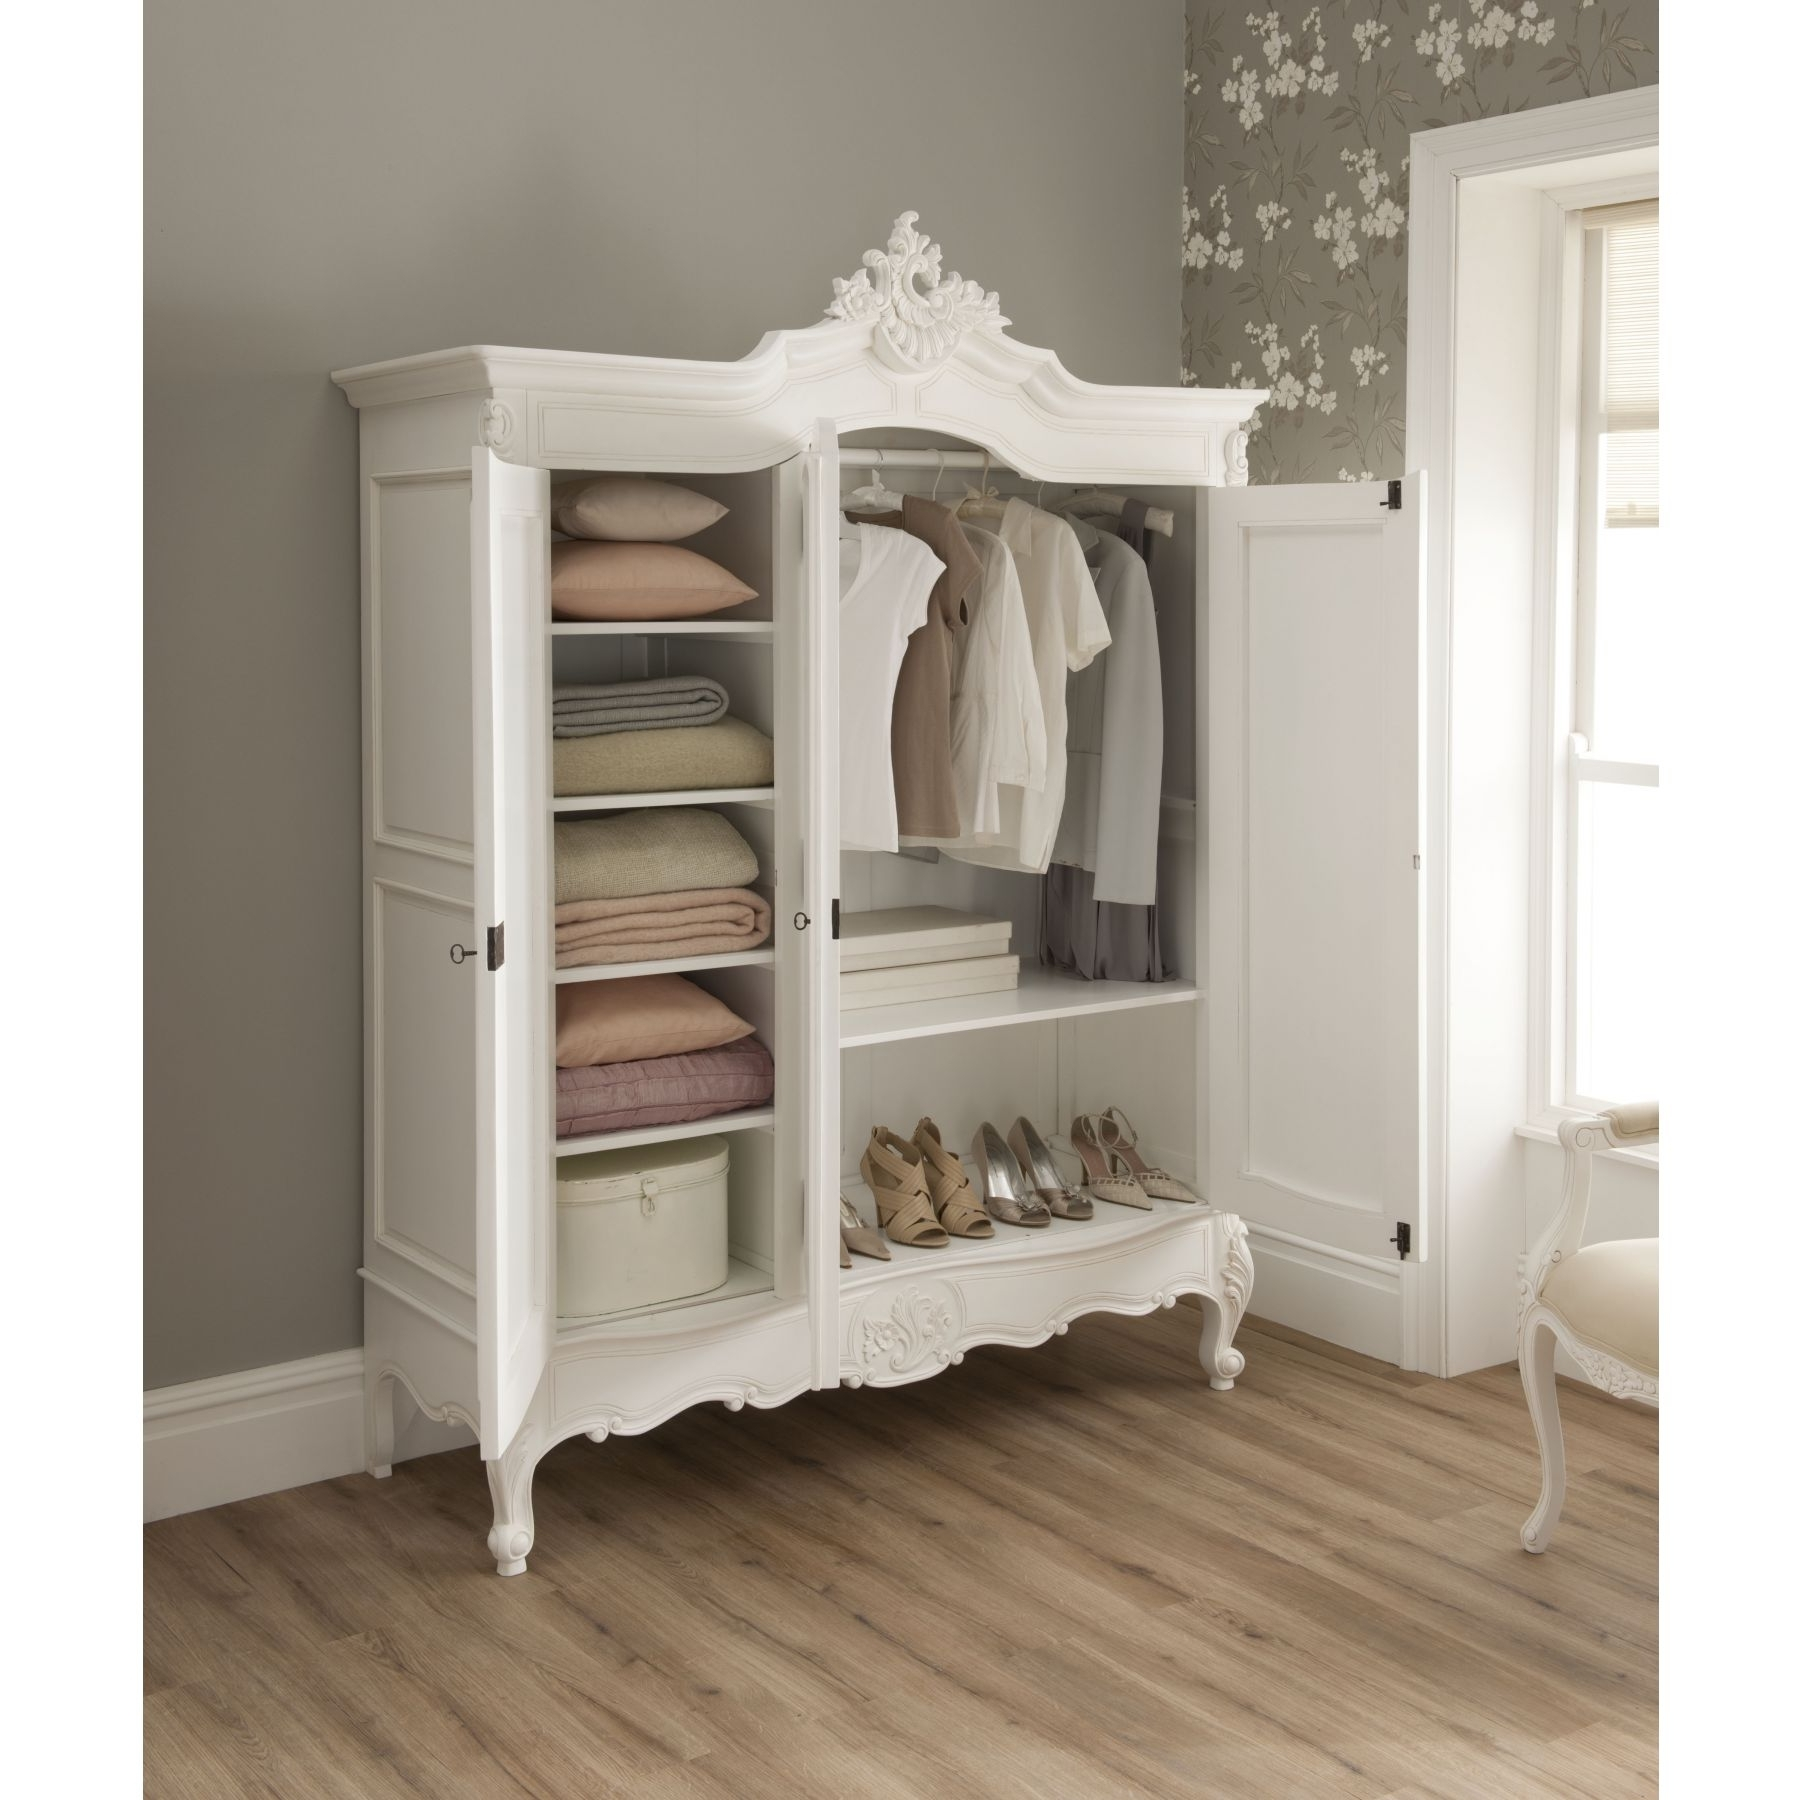 Famous Chic Wardrobes Throughout La Rochelle Shabby Chic Antique Style Wardrobe (View 12 of 15)